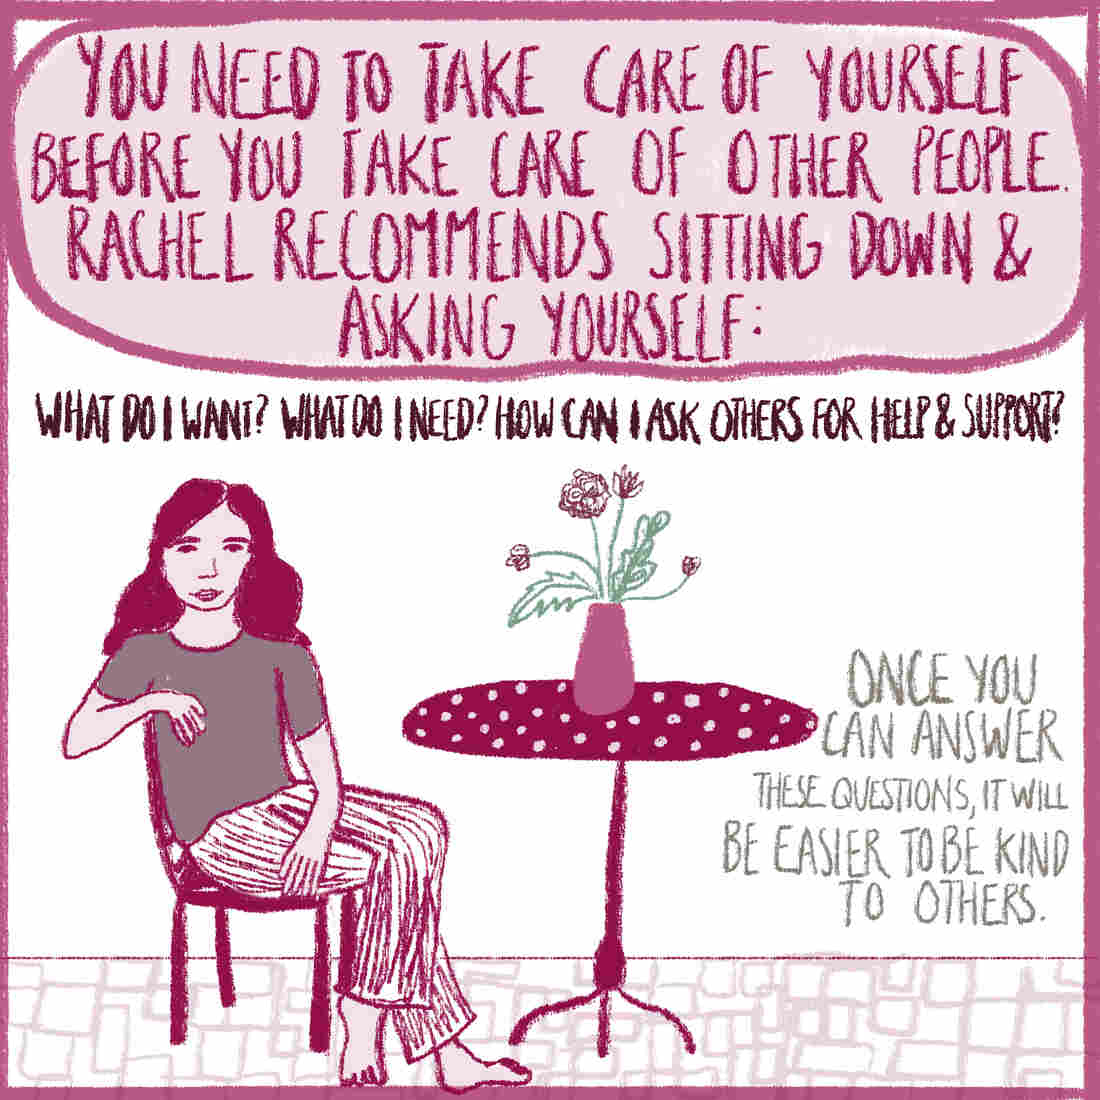 "Image of a woman sitting at a table with a vase of flowers. Text reads: ""You need to take care of yourself before you take care of other people. Rachel recommends sitting down and asking yourself: What do I want? What do I need? How can I ask others for help? Once you answer these questions, it will be easier to be kind to others."